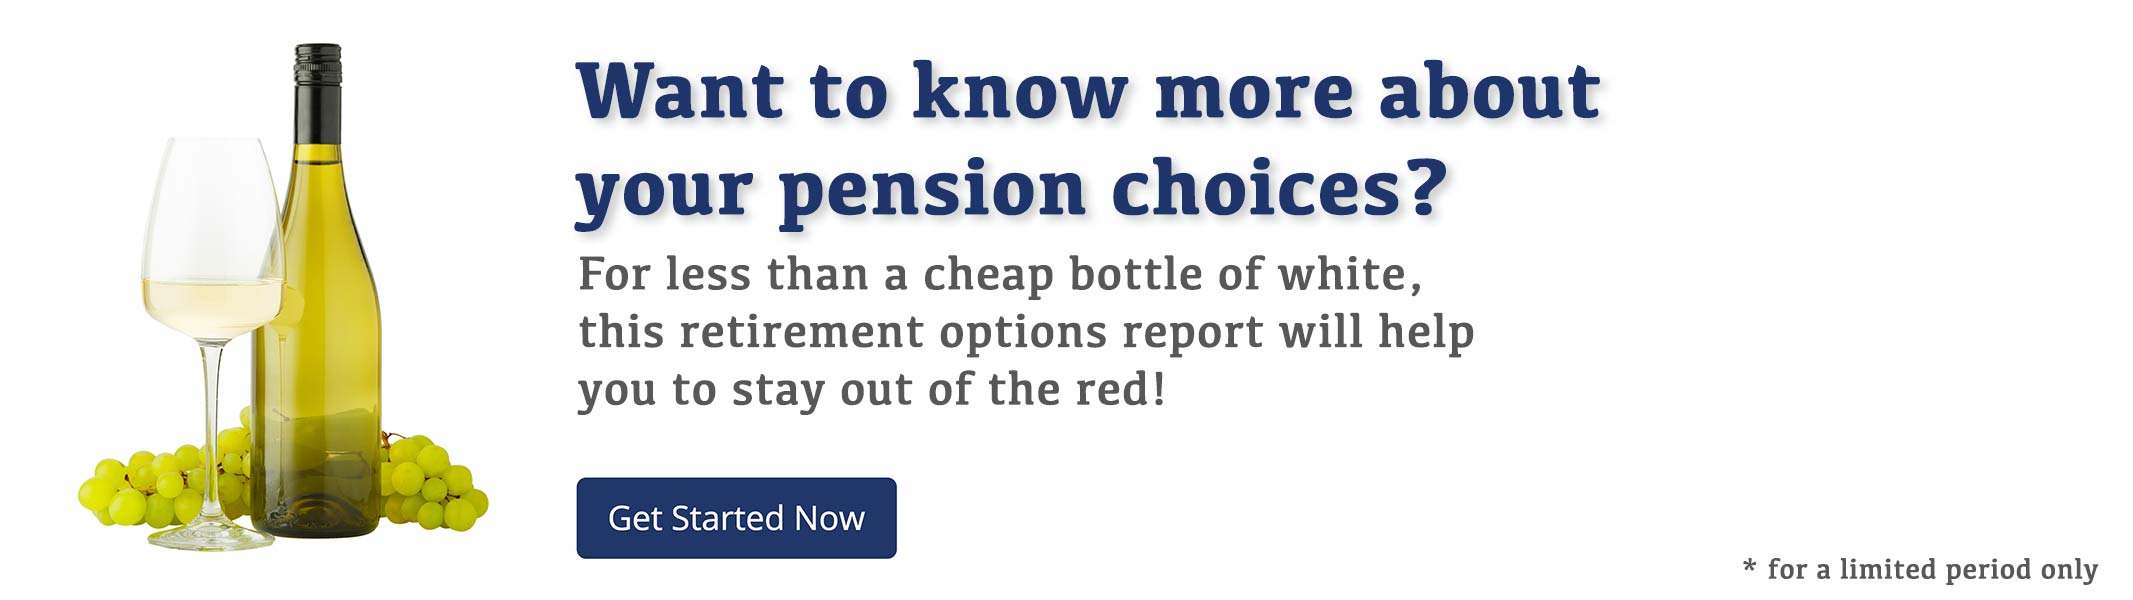 Worried or just want to know more about your pension choices? For less than a cheap bottle of white, this retirement options report will help you to stay out of the red!